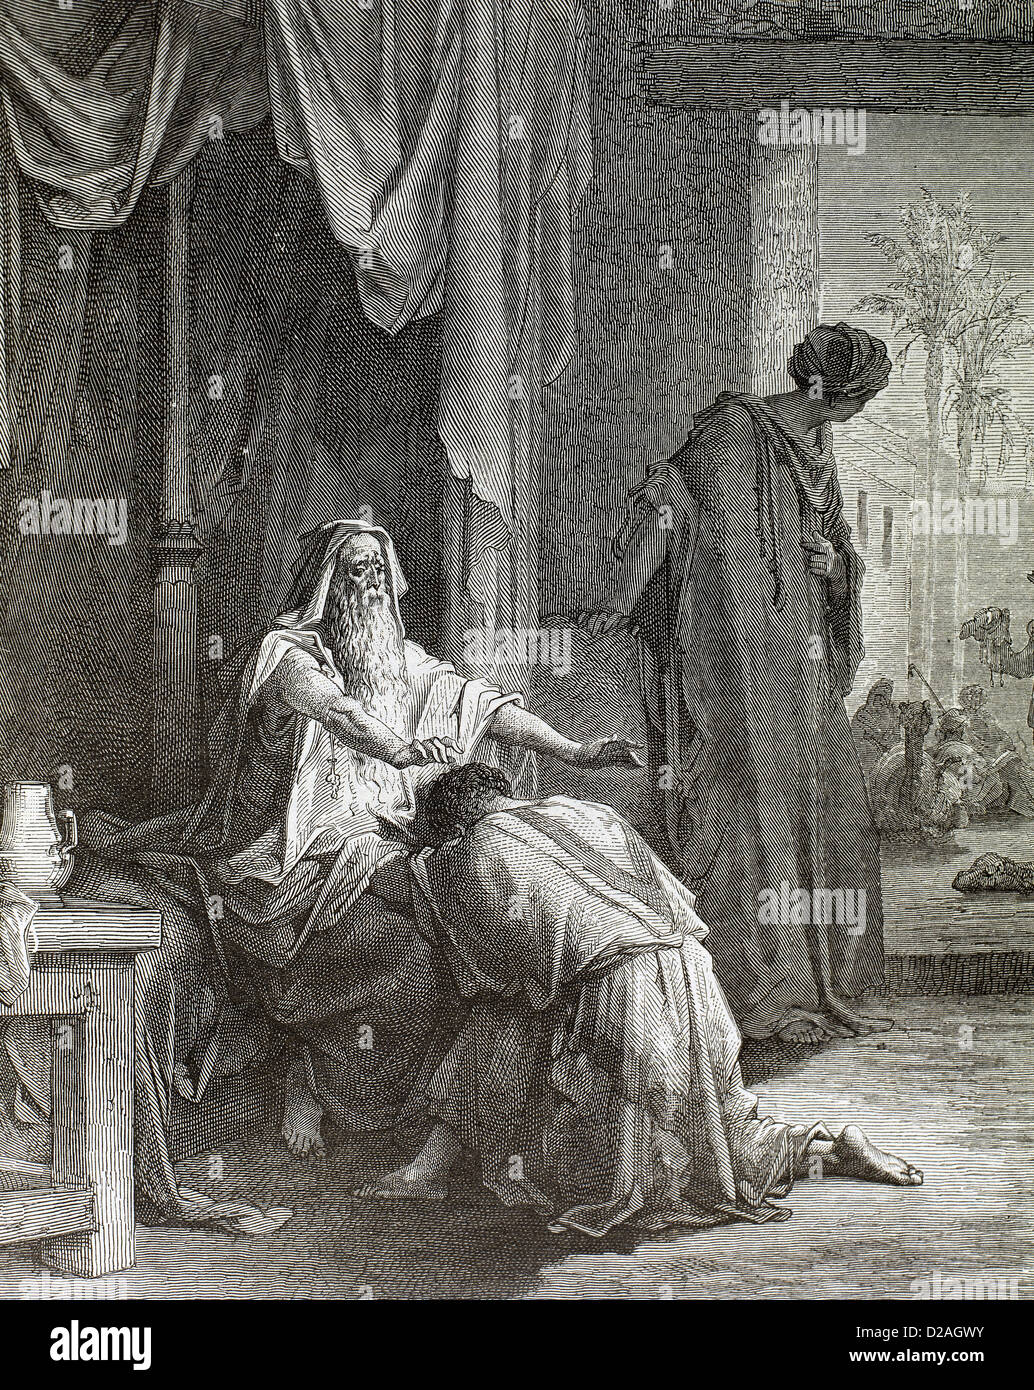 Old Testament. Book of Genesis. Hebrew patriarch Isaac blesses his son Jacob and sends him to Mesopotamia. Engraving - Stock Image